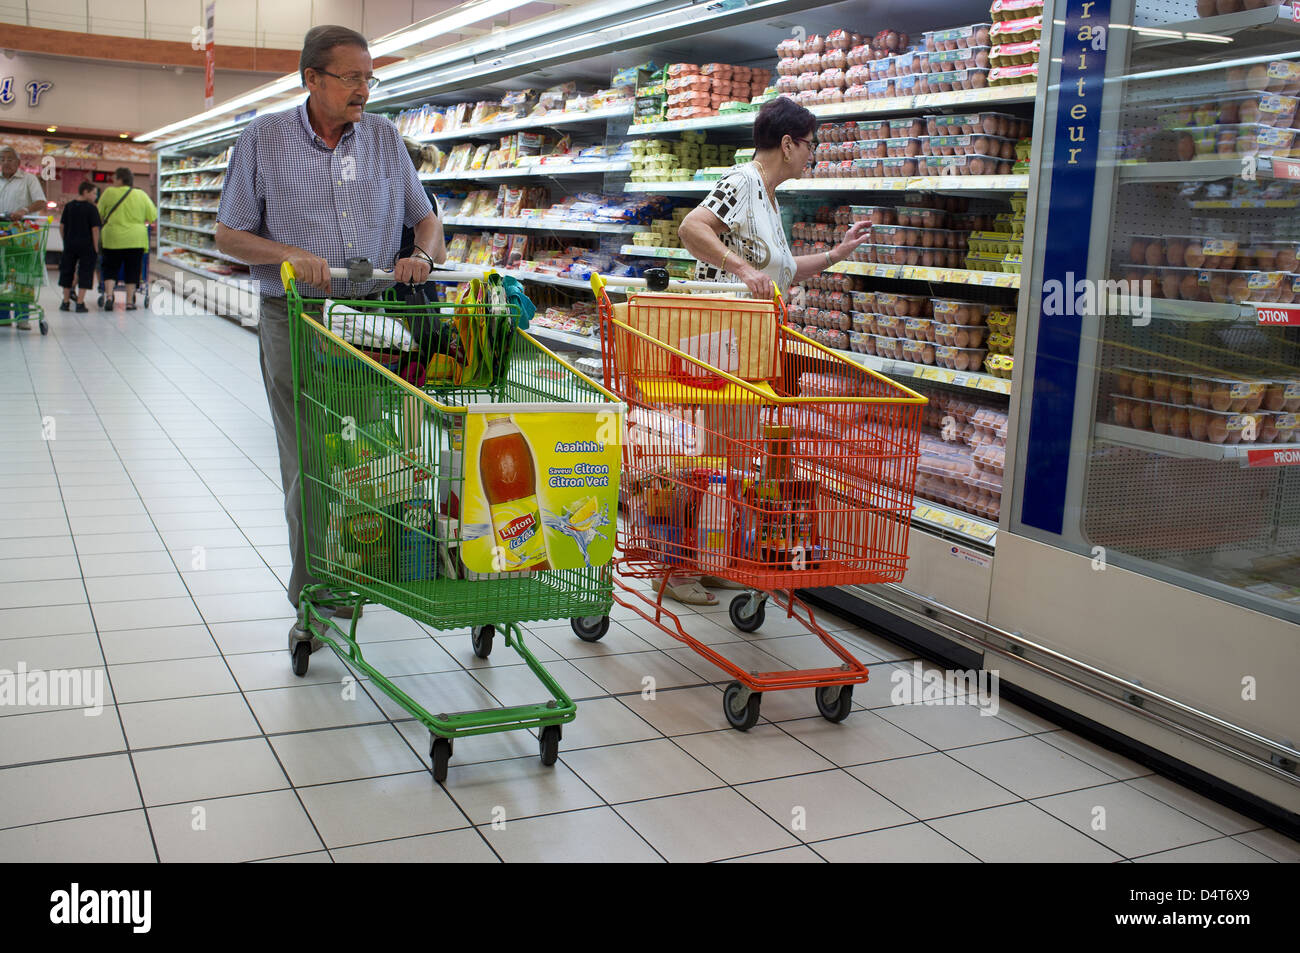 Colmar, France, a couple shopping in a supermarket Leclerc